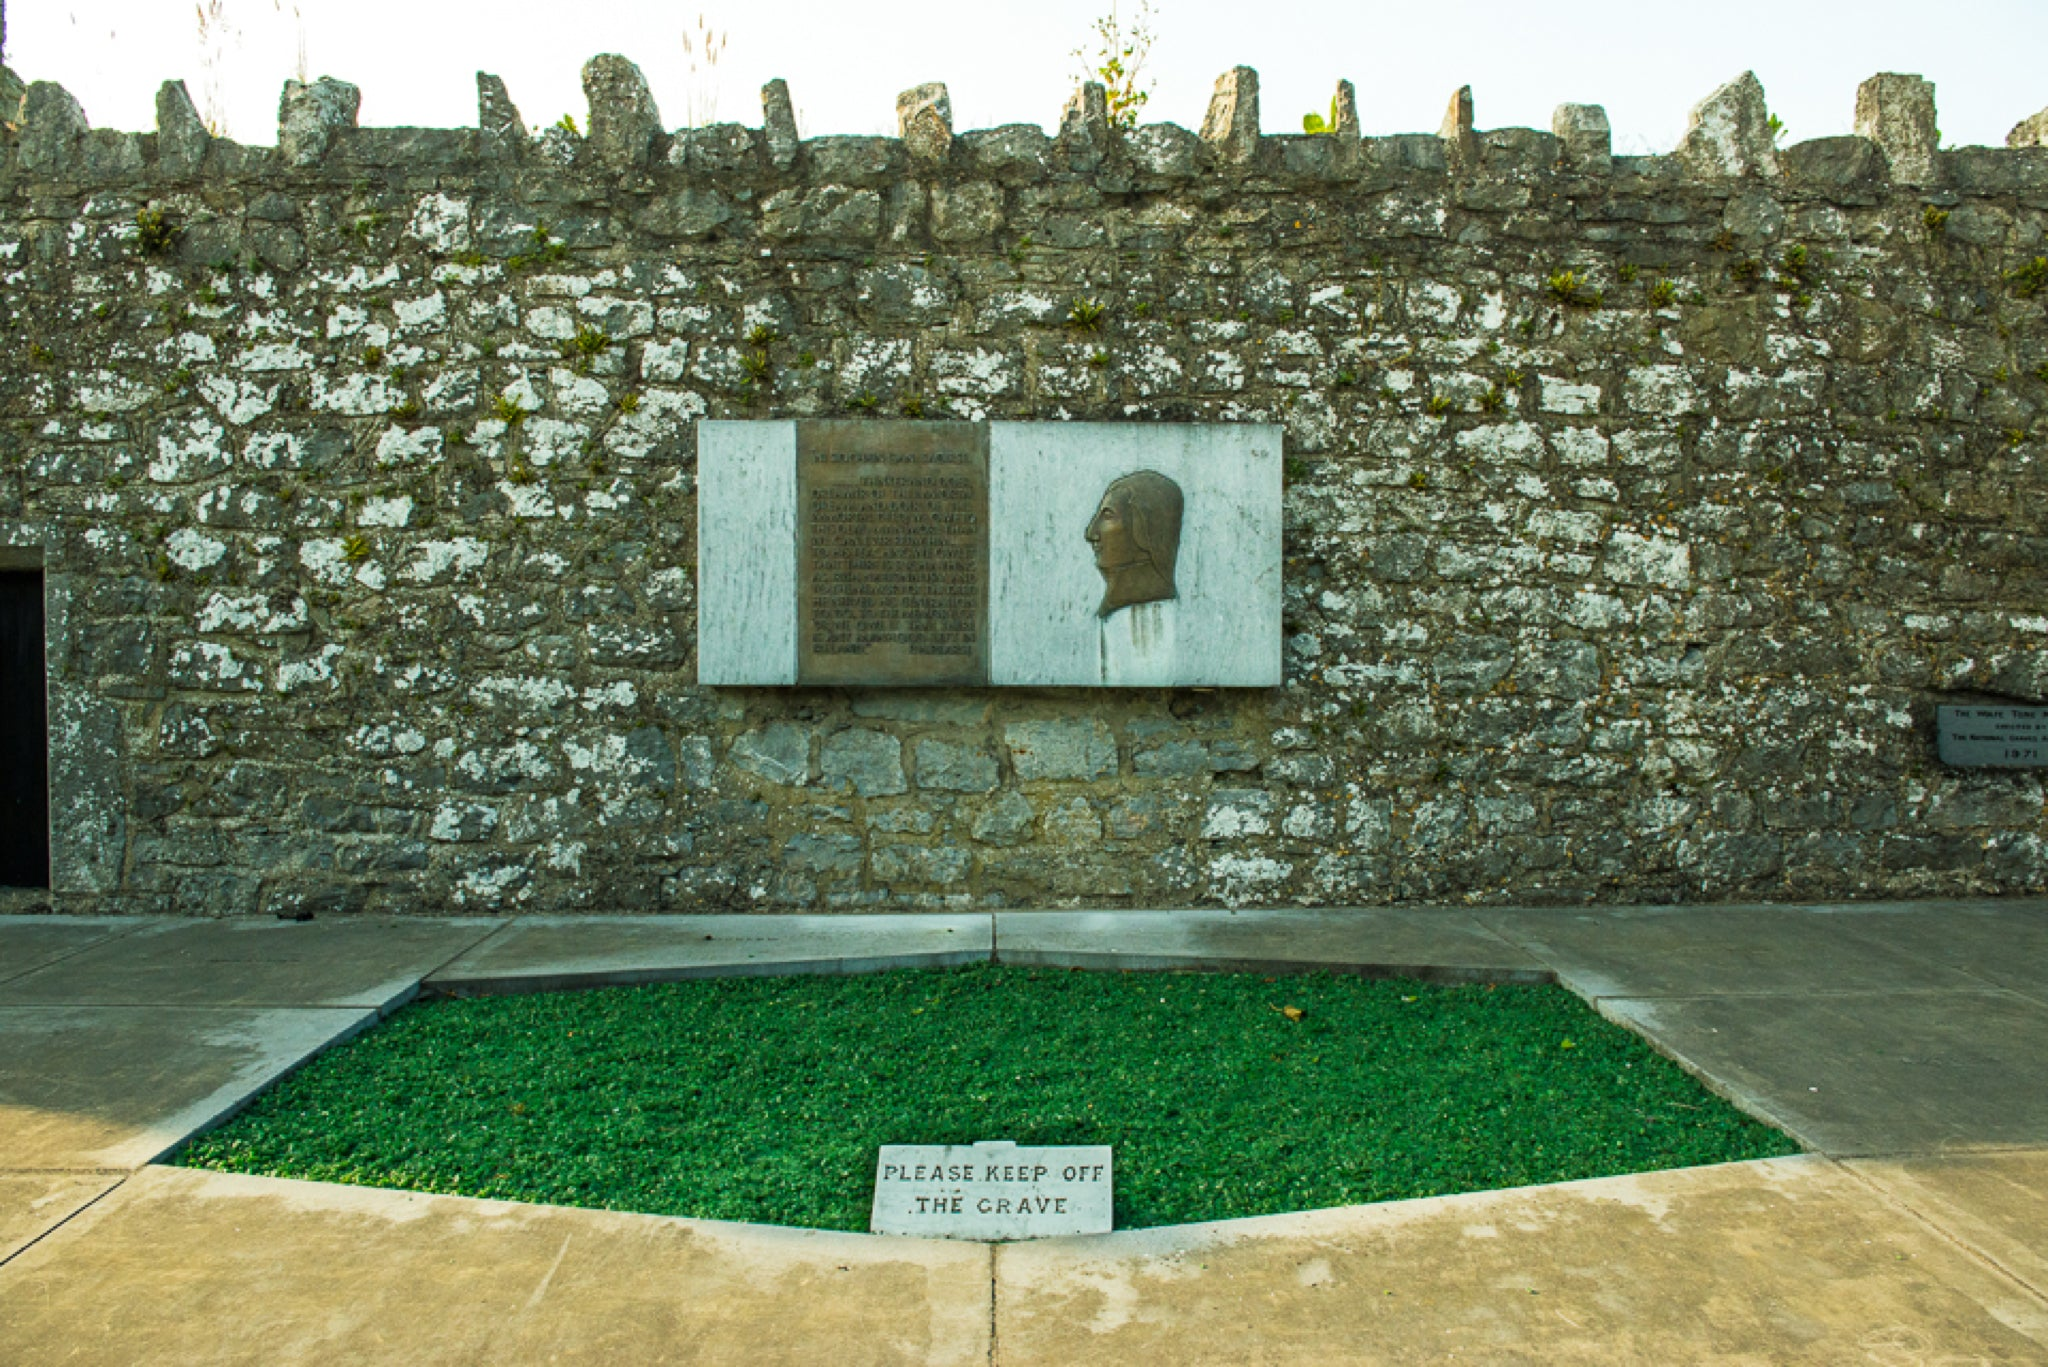 Remembering Theobald Wolfe Tone